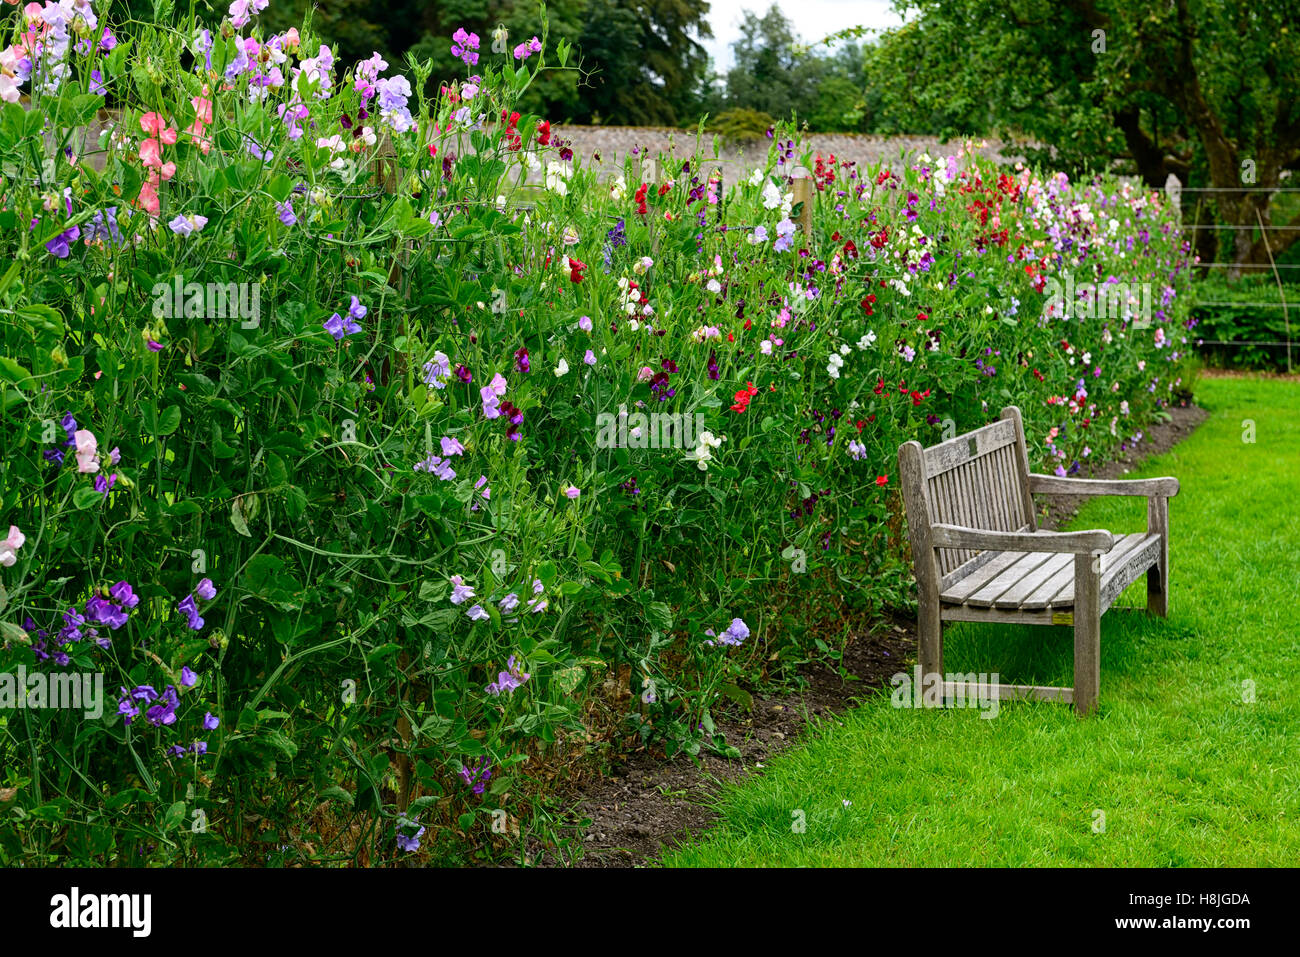 Lathyrus Sweet Peas Pea Grow Growing Up Fence Fencing Plant Supports